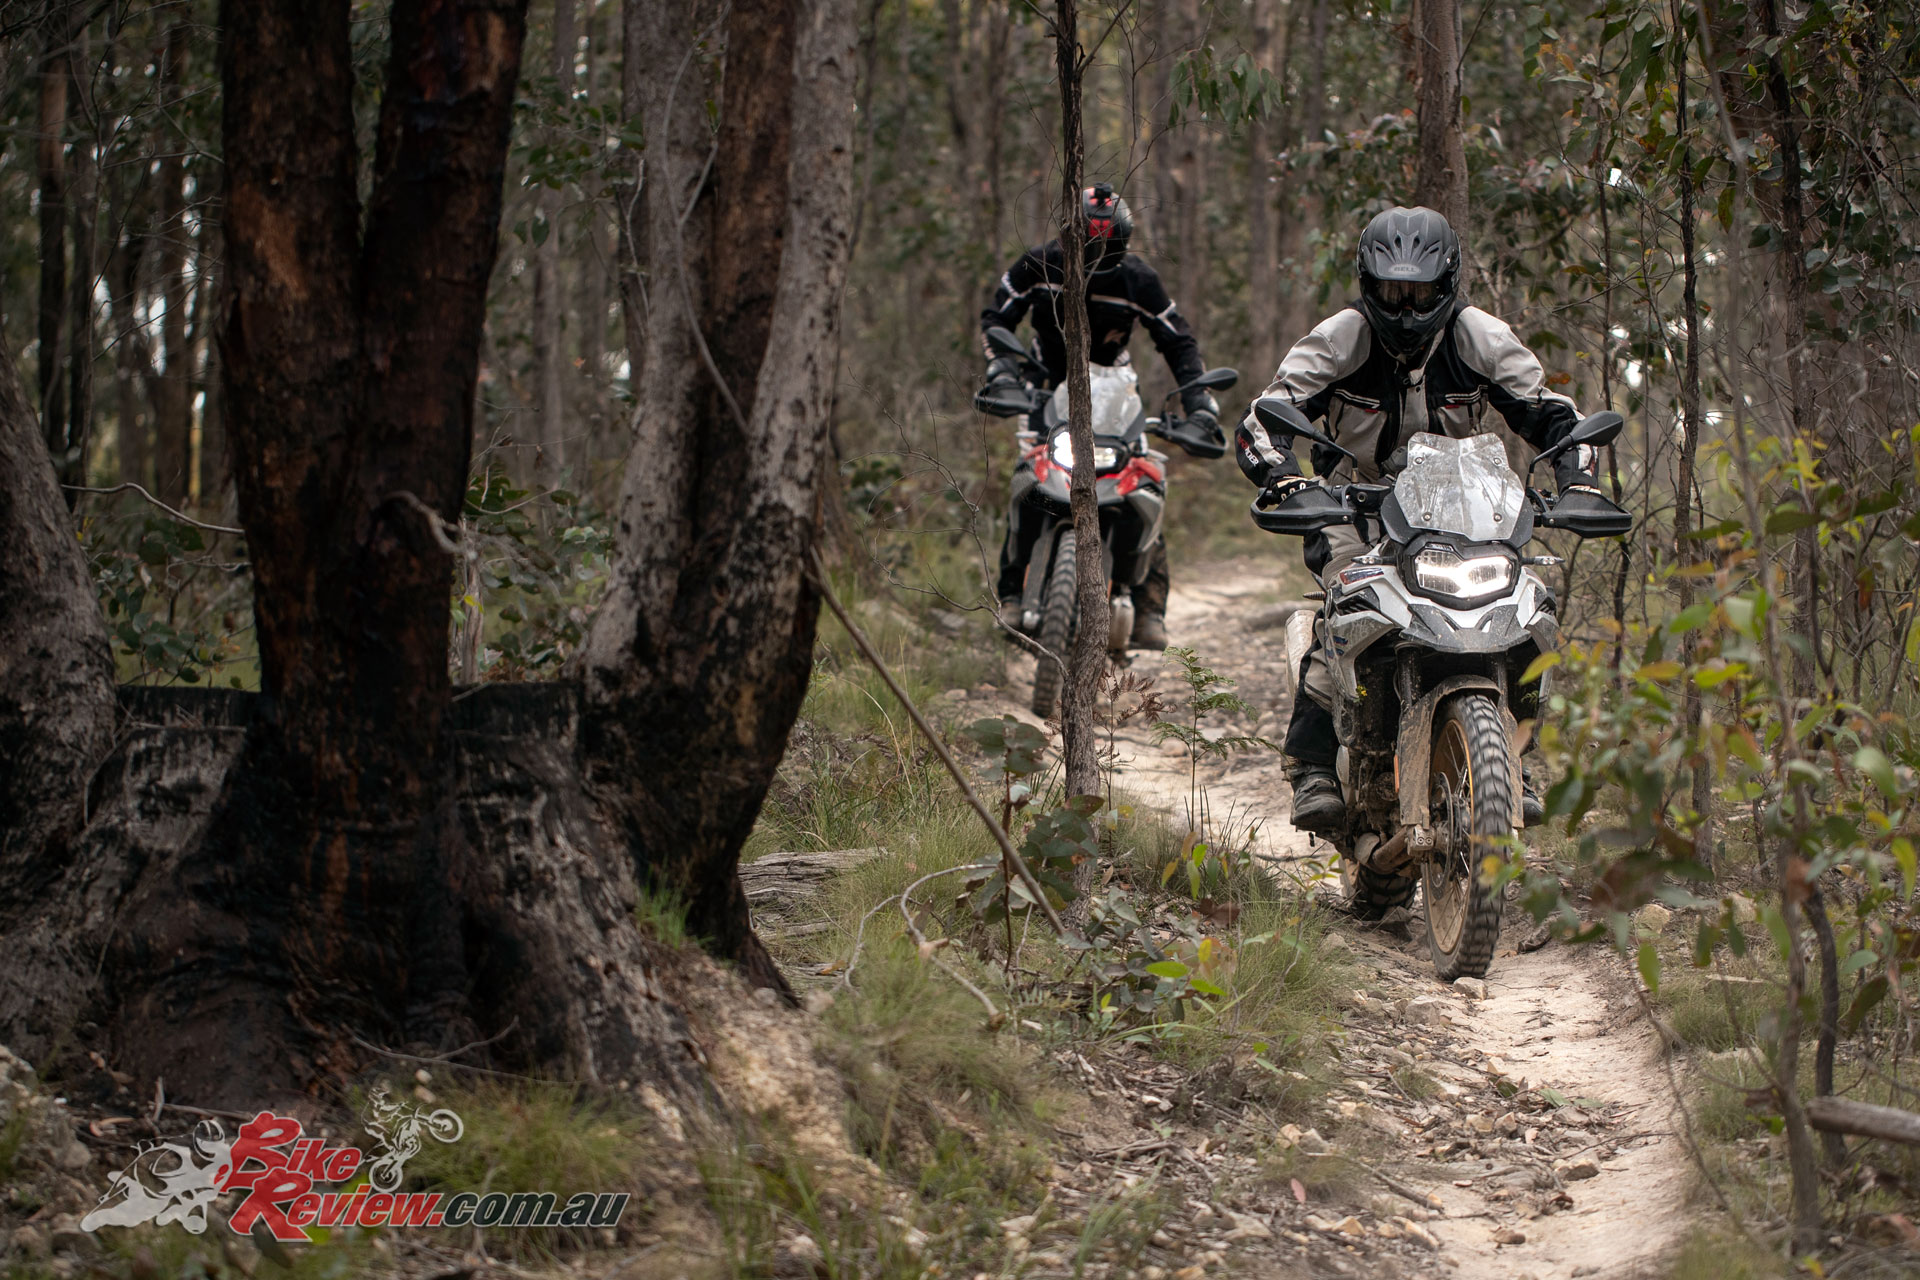 Enduro Pro mode, which comes with the Riding Modes Pro option offers